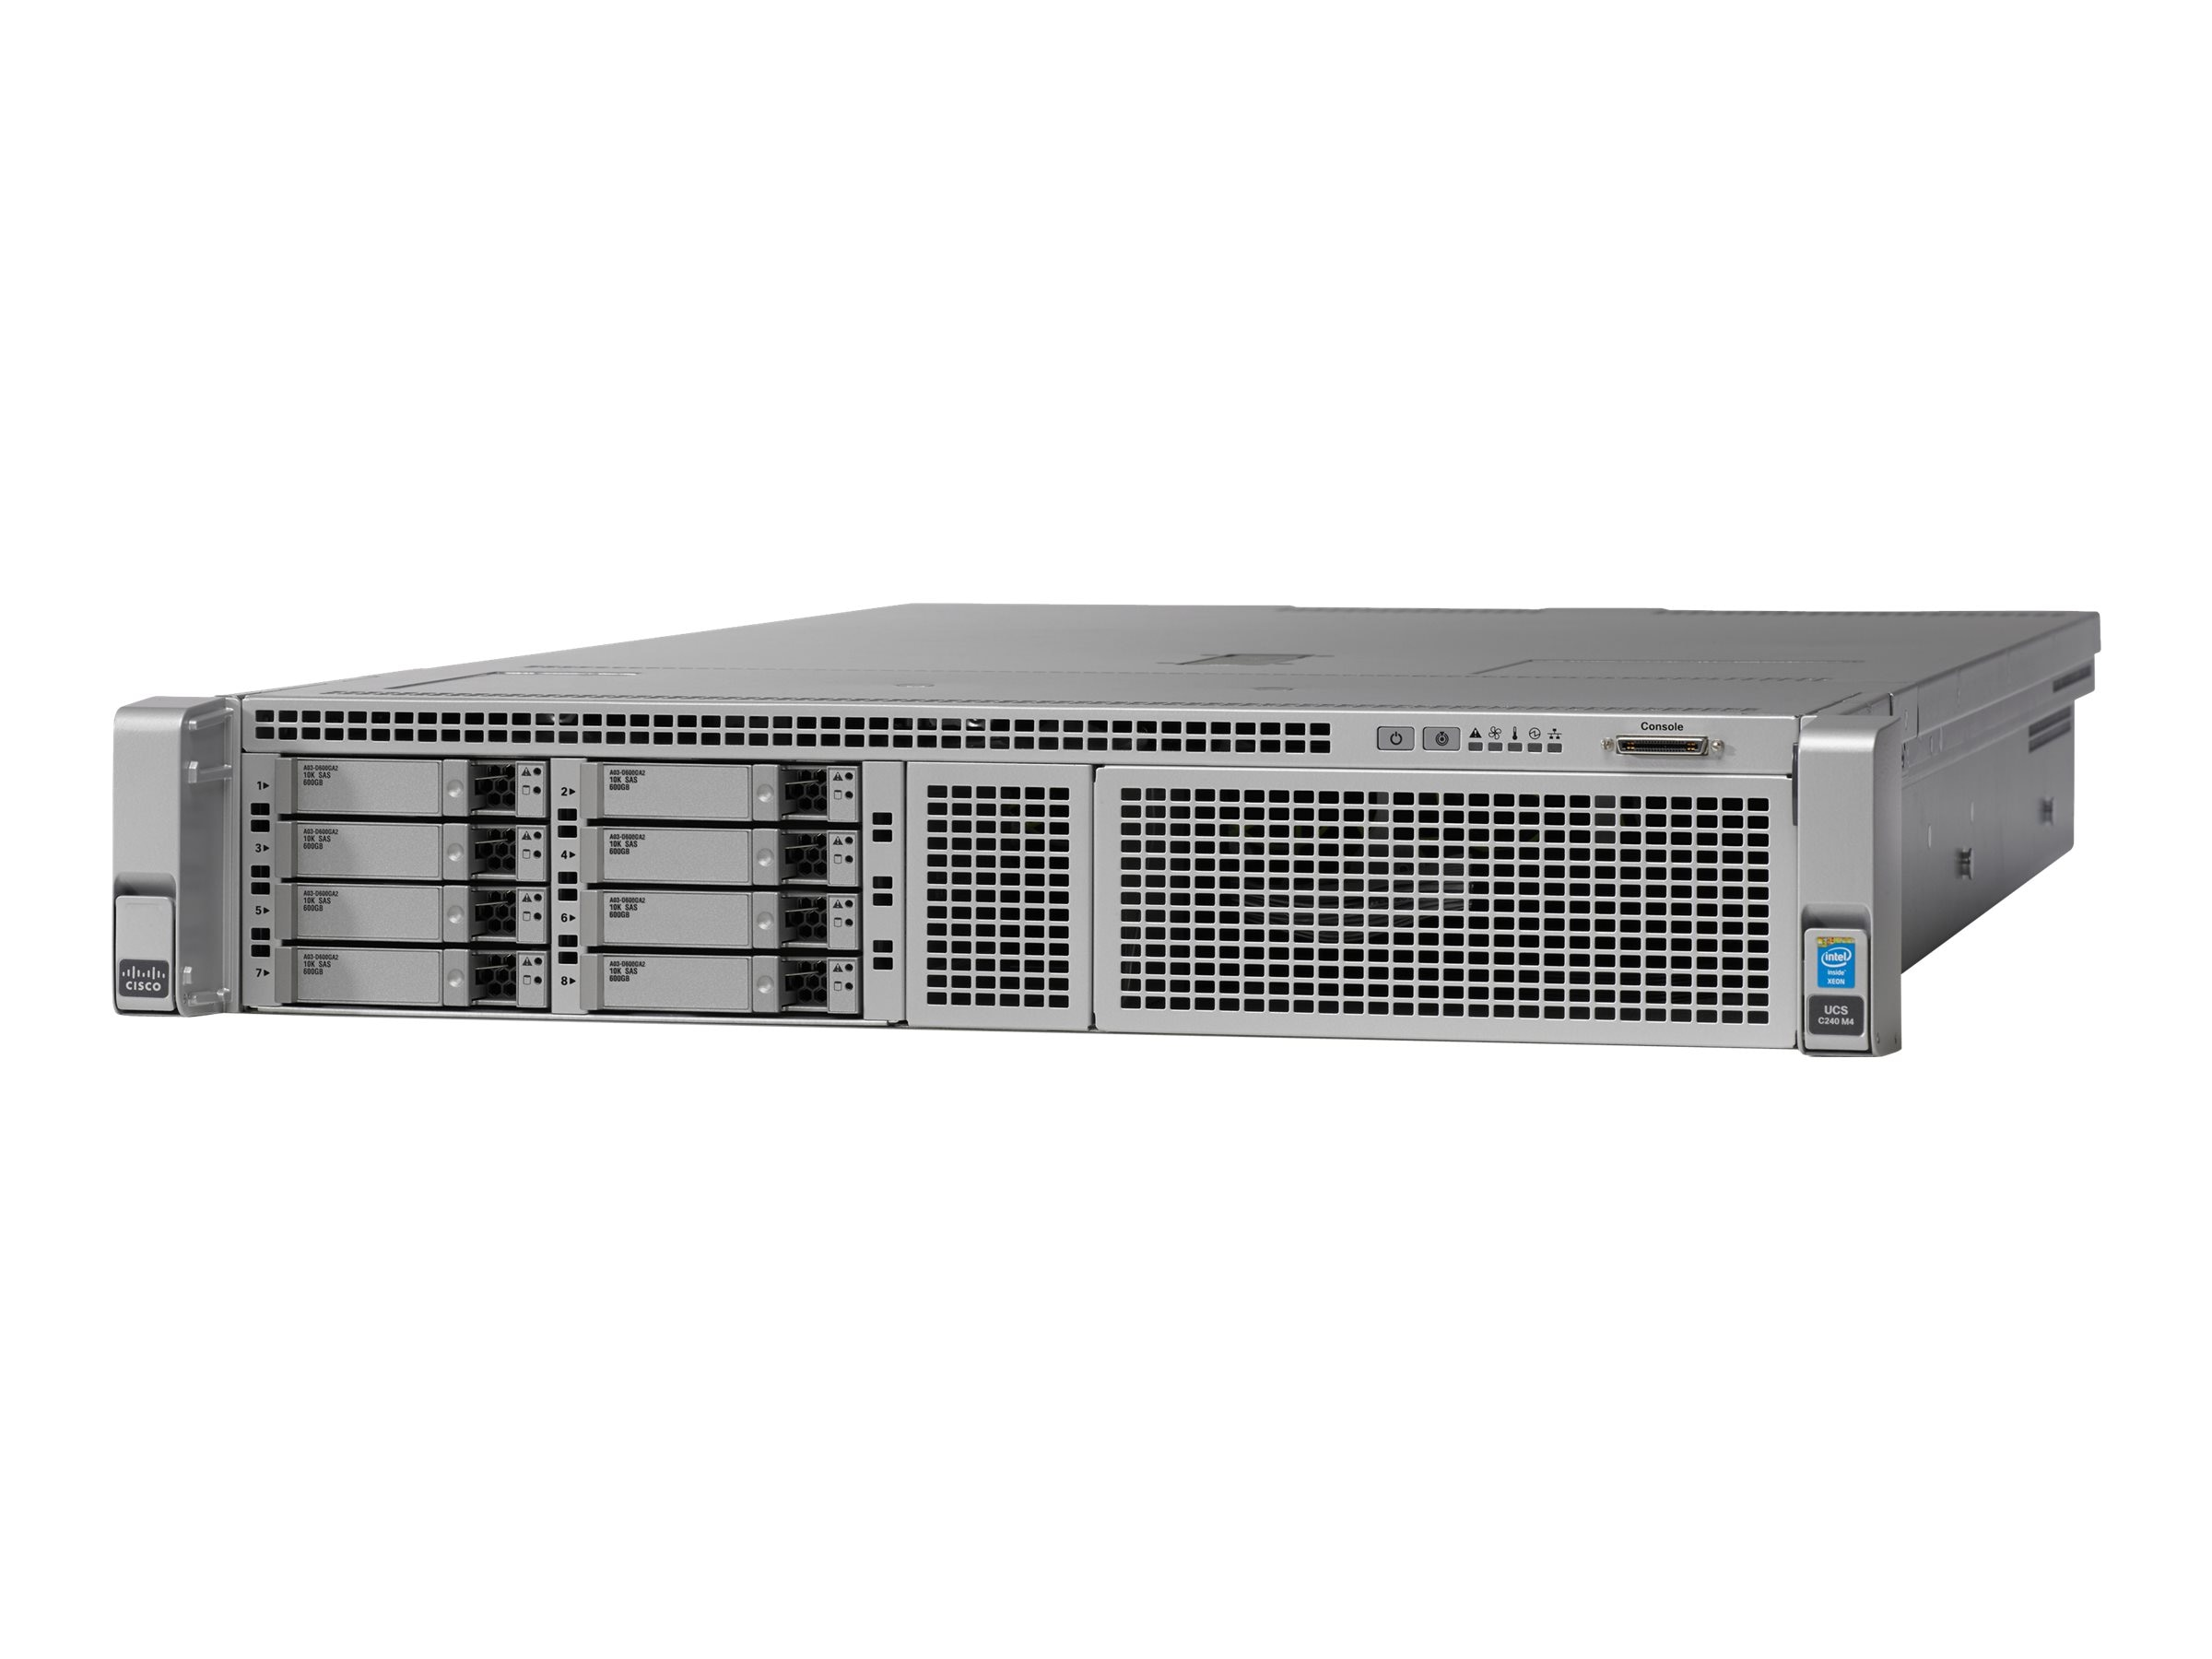 Cisco Barebones, UCS C240 M4 8xSFF without CPU, Memory, HDD, SSD, PCIe, Rail Kit or PSU